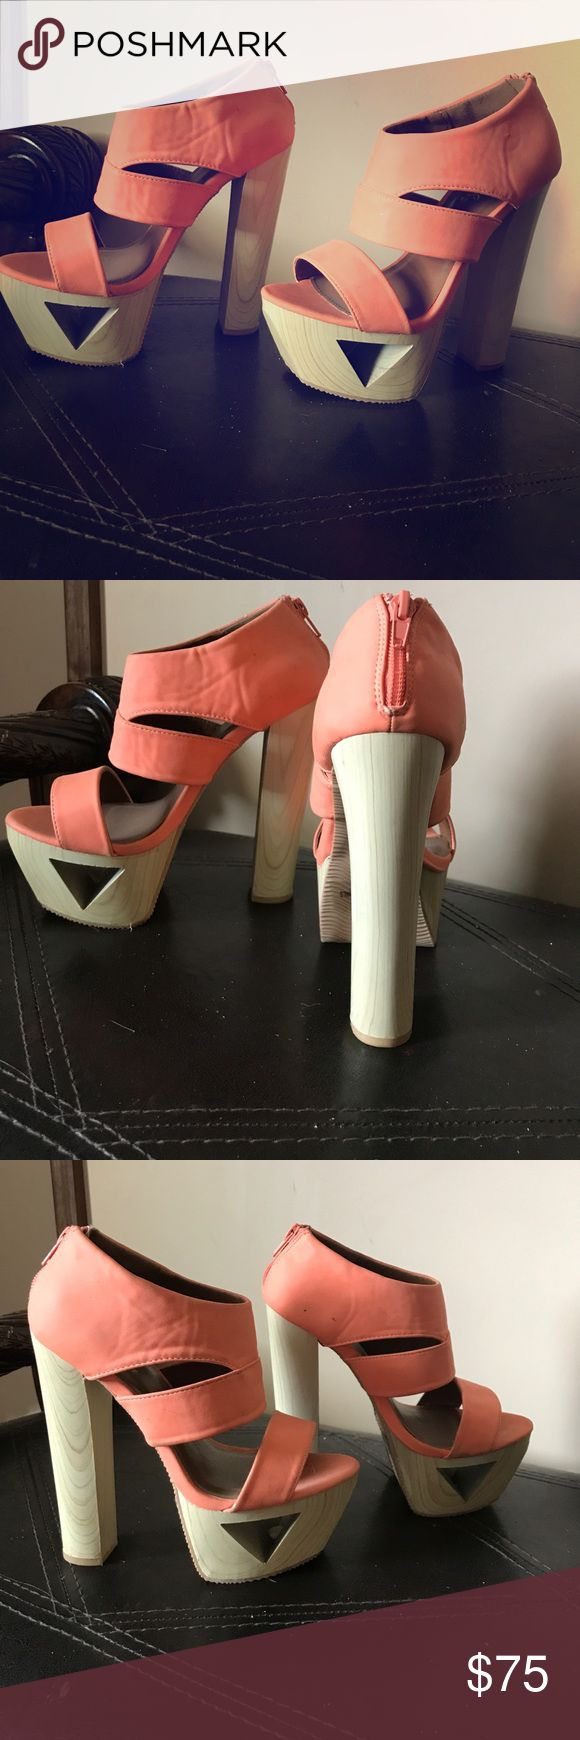 Sexy platforms high Coral wooden clog heels sz 5.5 Size 5.5 super sexy really comfortable worn them a few time clog look coral color Shoes Heels